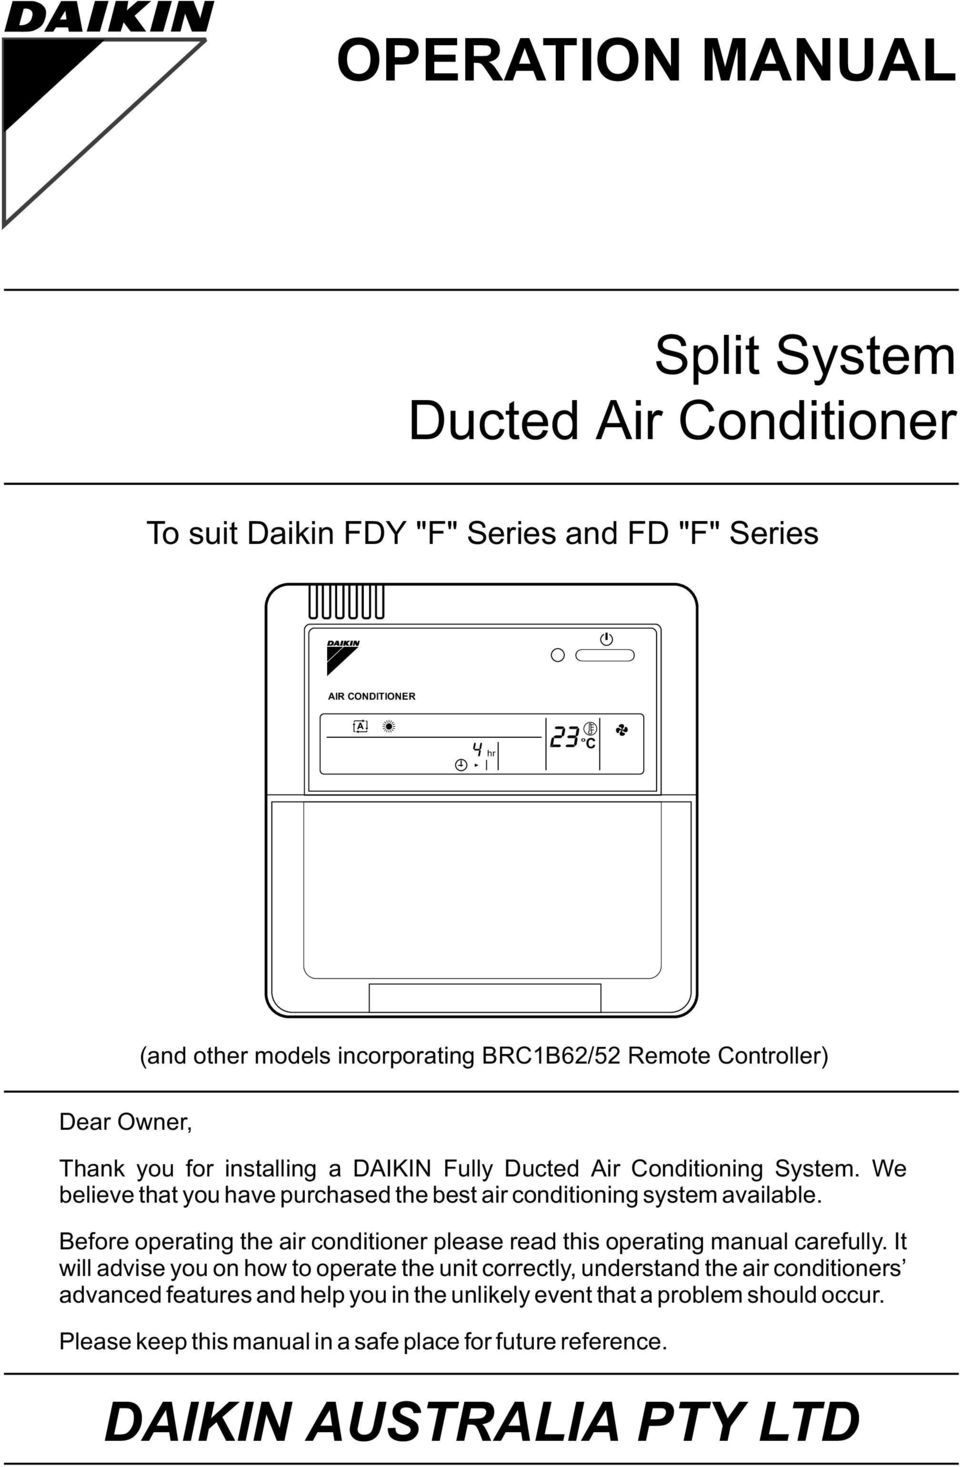 We believe that you have purchased the best air conditioning system available. Before operating the air conditioner please read this operating manual carefully.